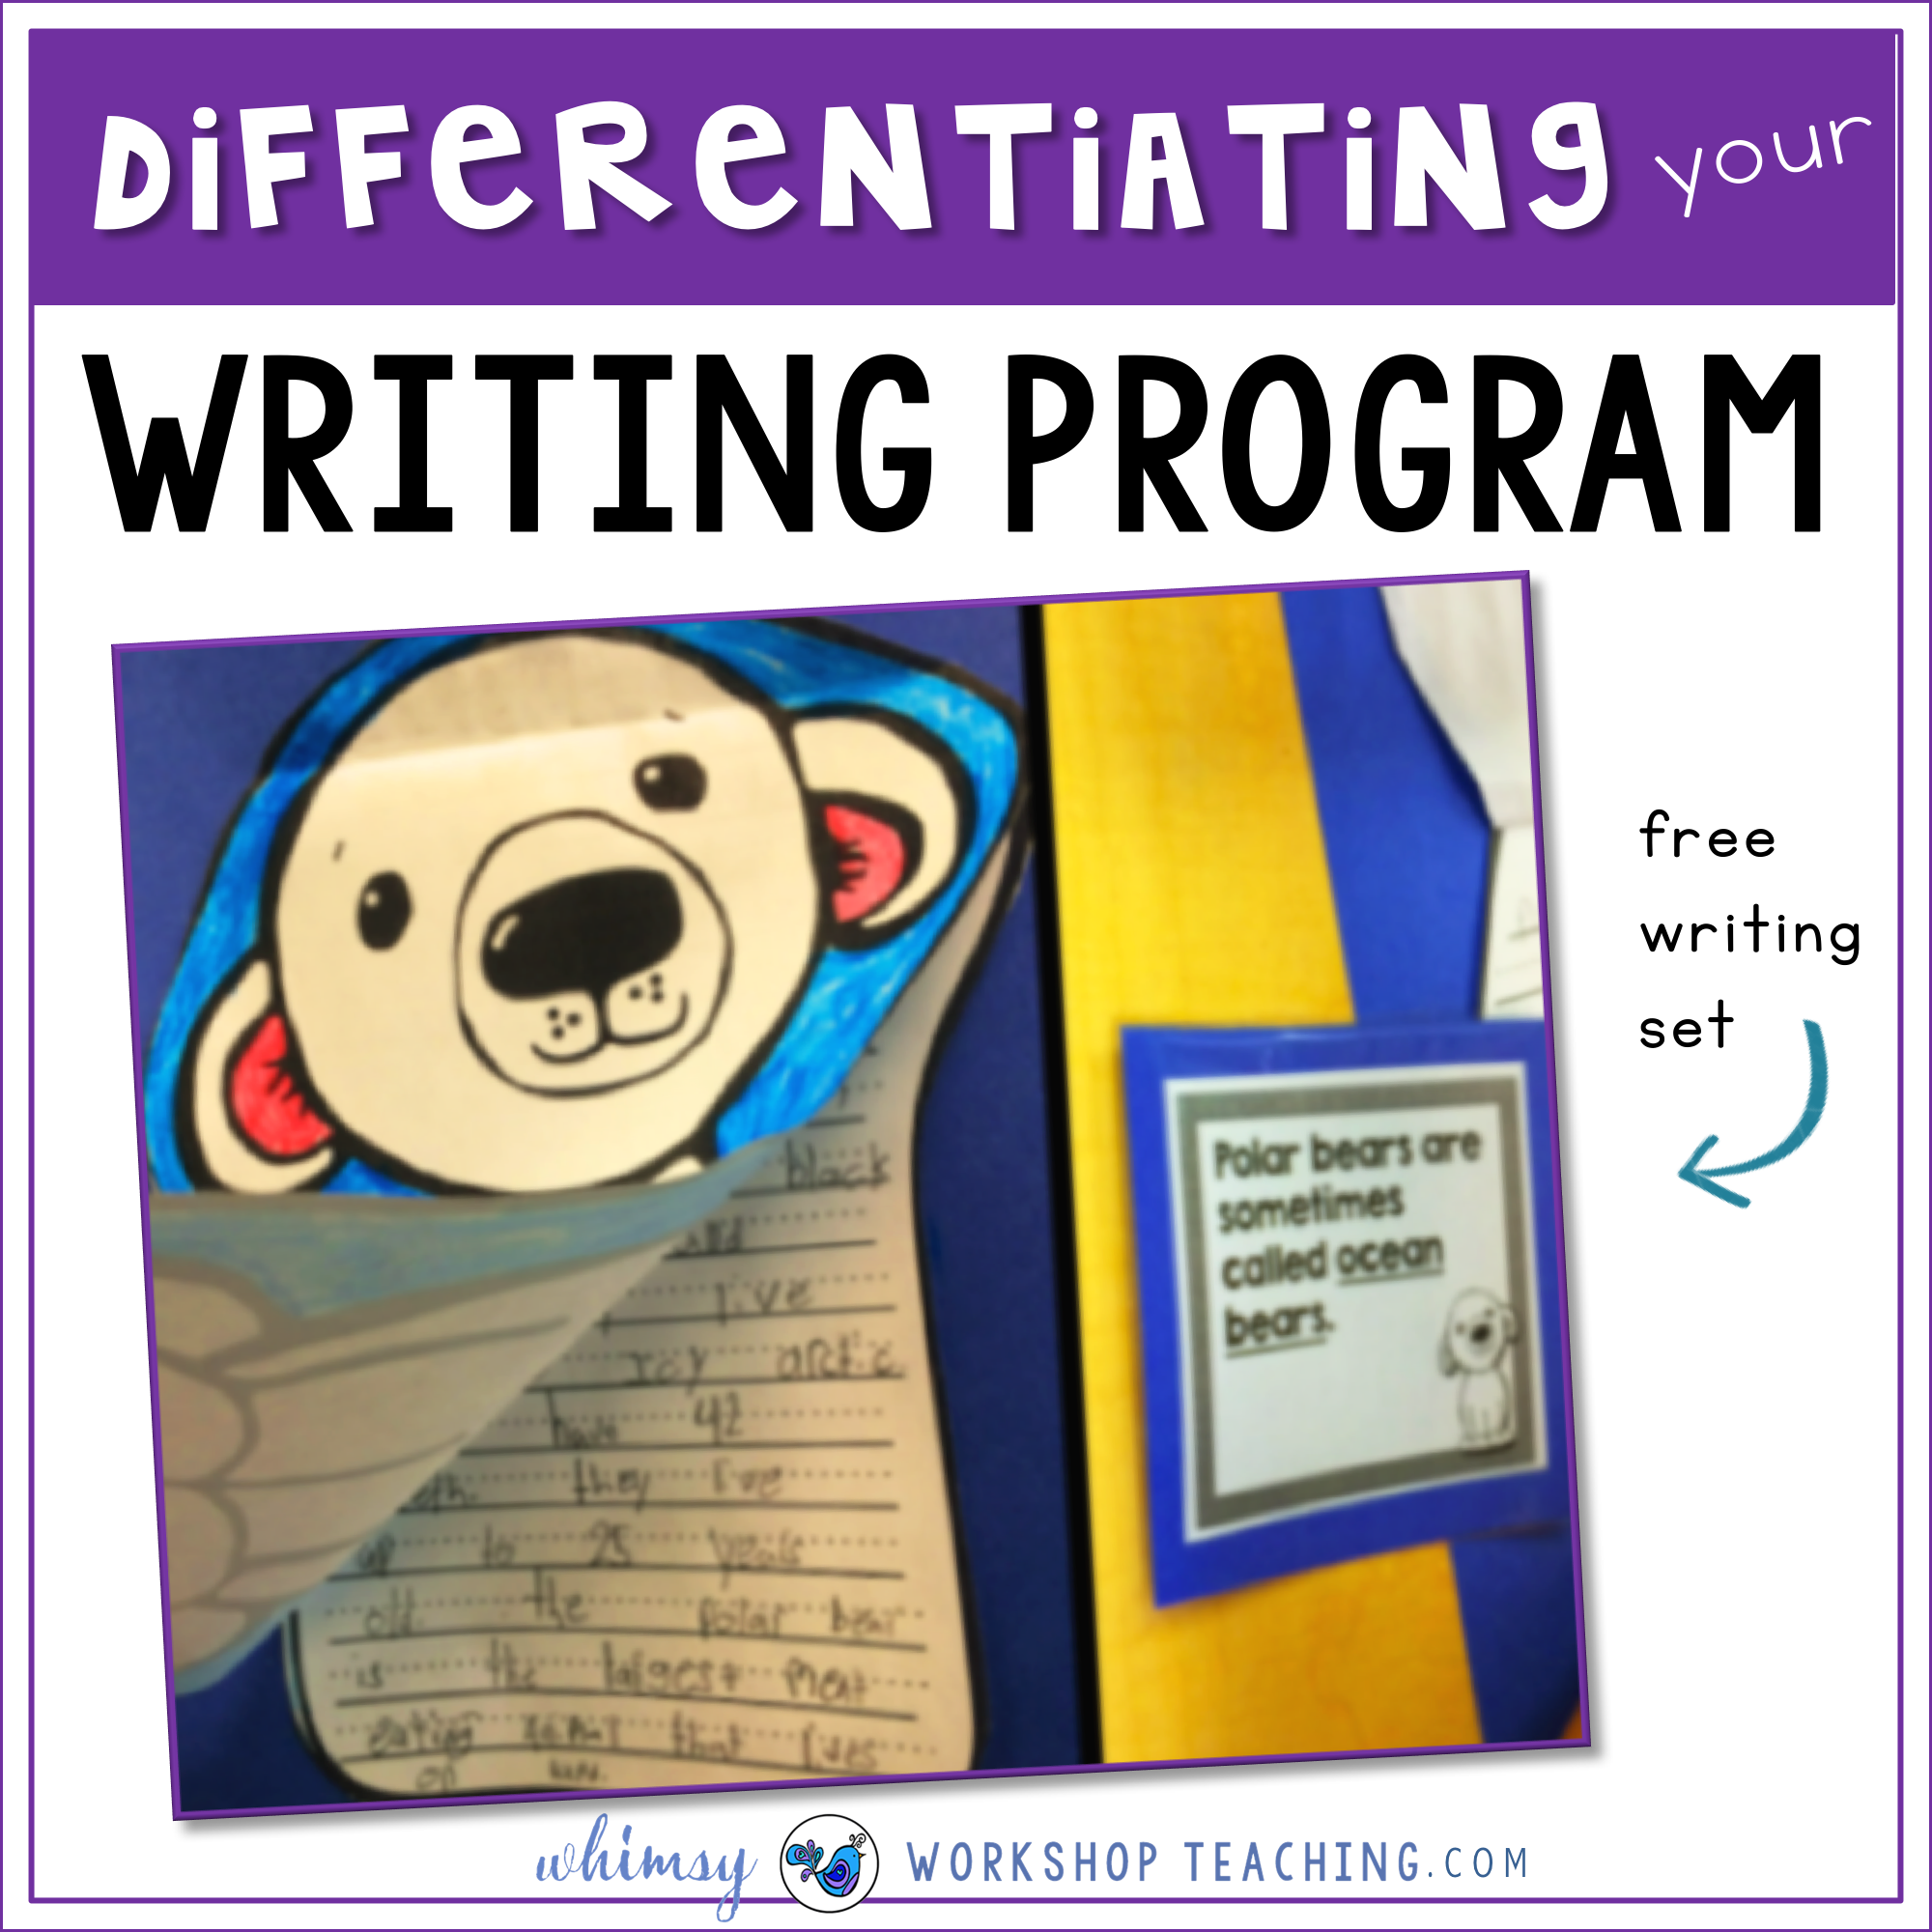 Differentiating your writing program